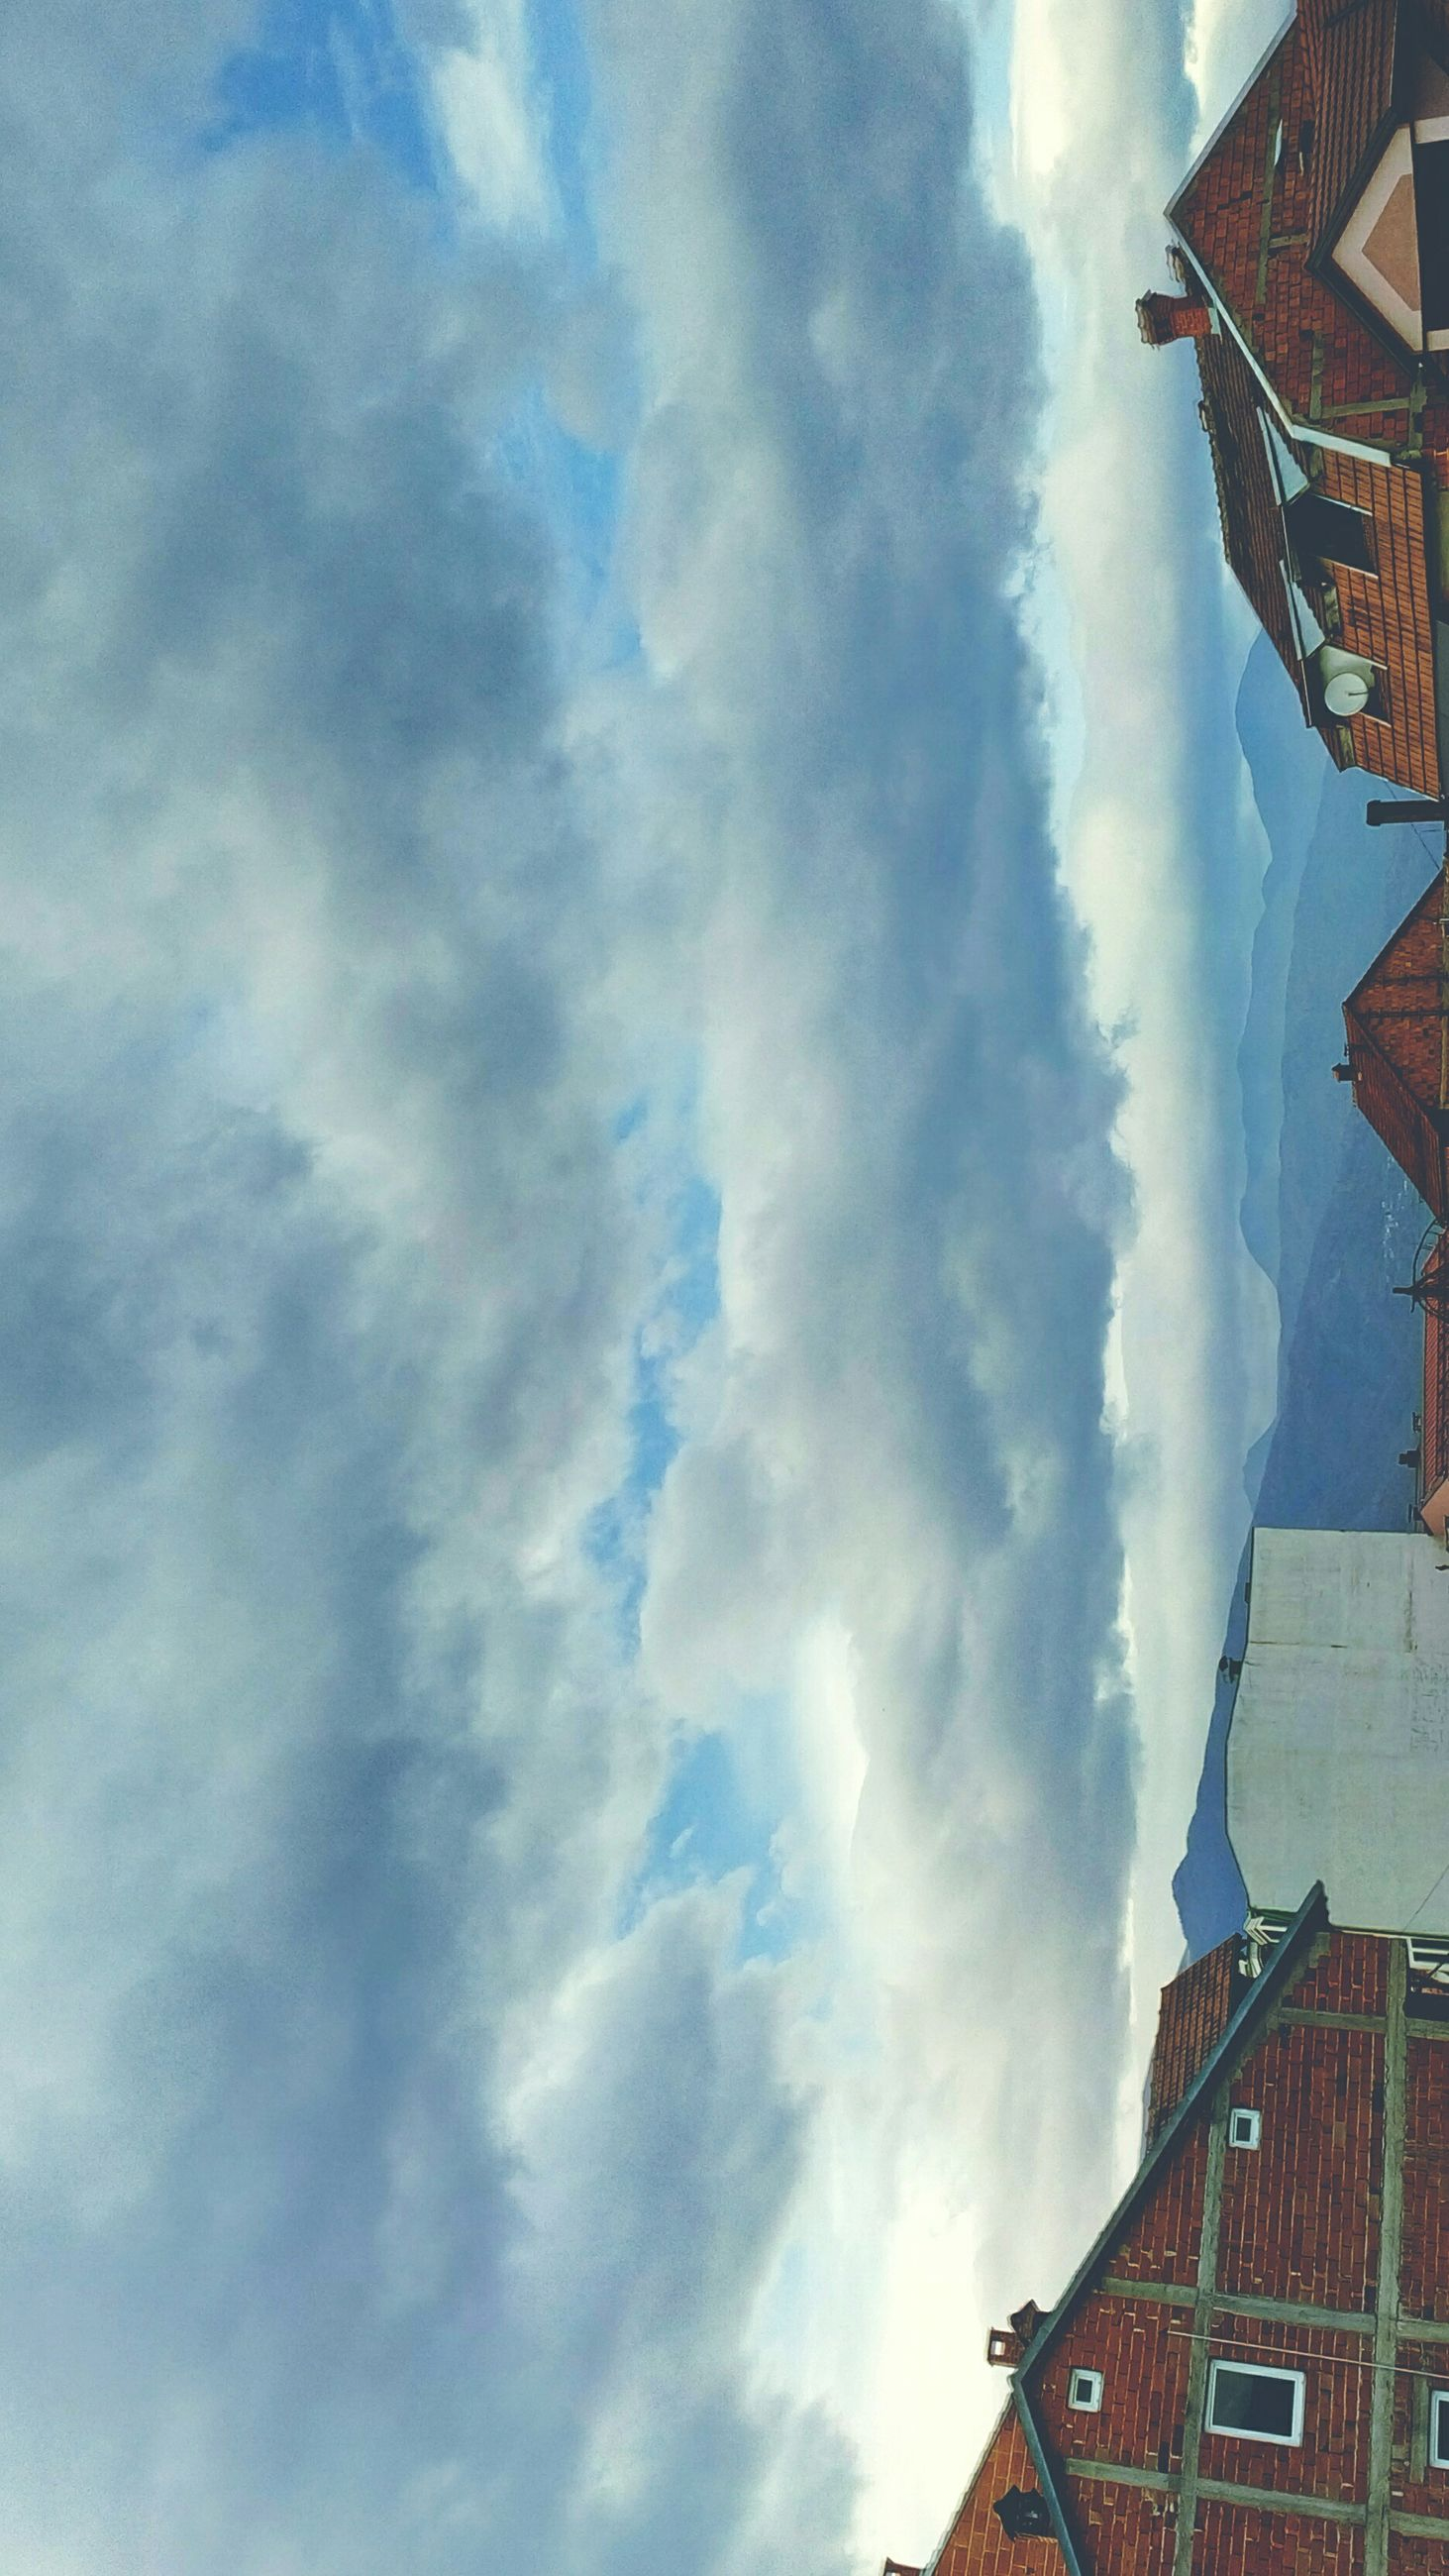 architecture, building exterior, built structure, sky, cloud - sky, low angle view, cloudy, cloud, roof, residential structure, city, residential building, building, outdoors, house, day, no people, high section, weather, blue